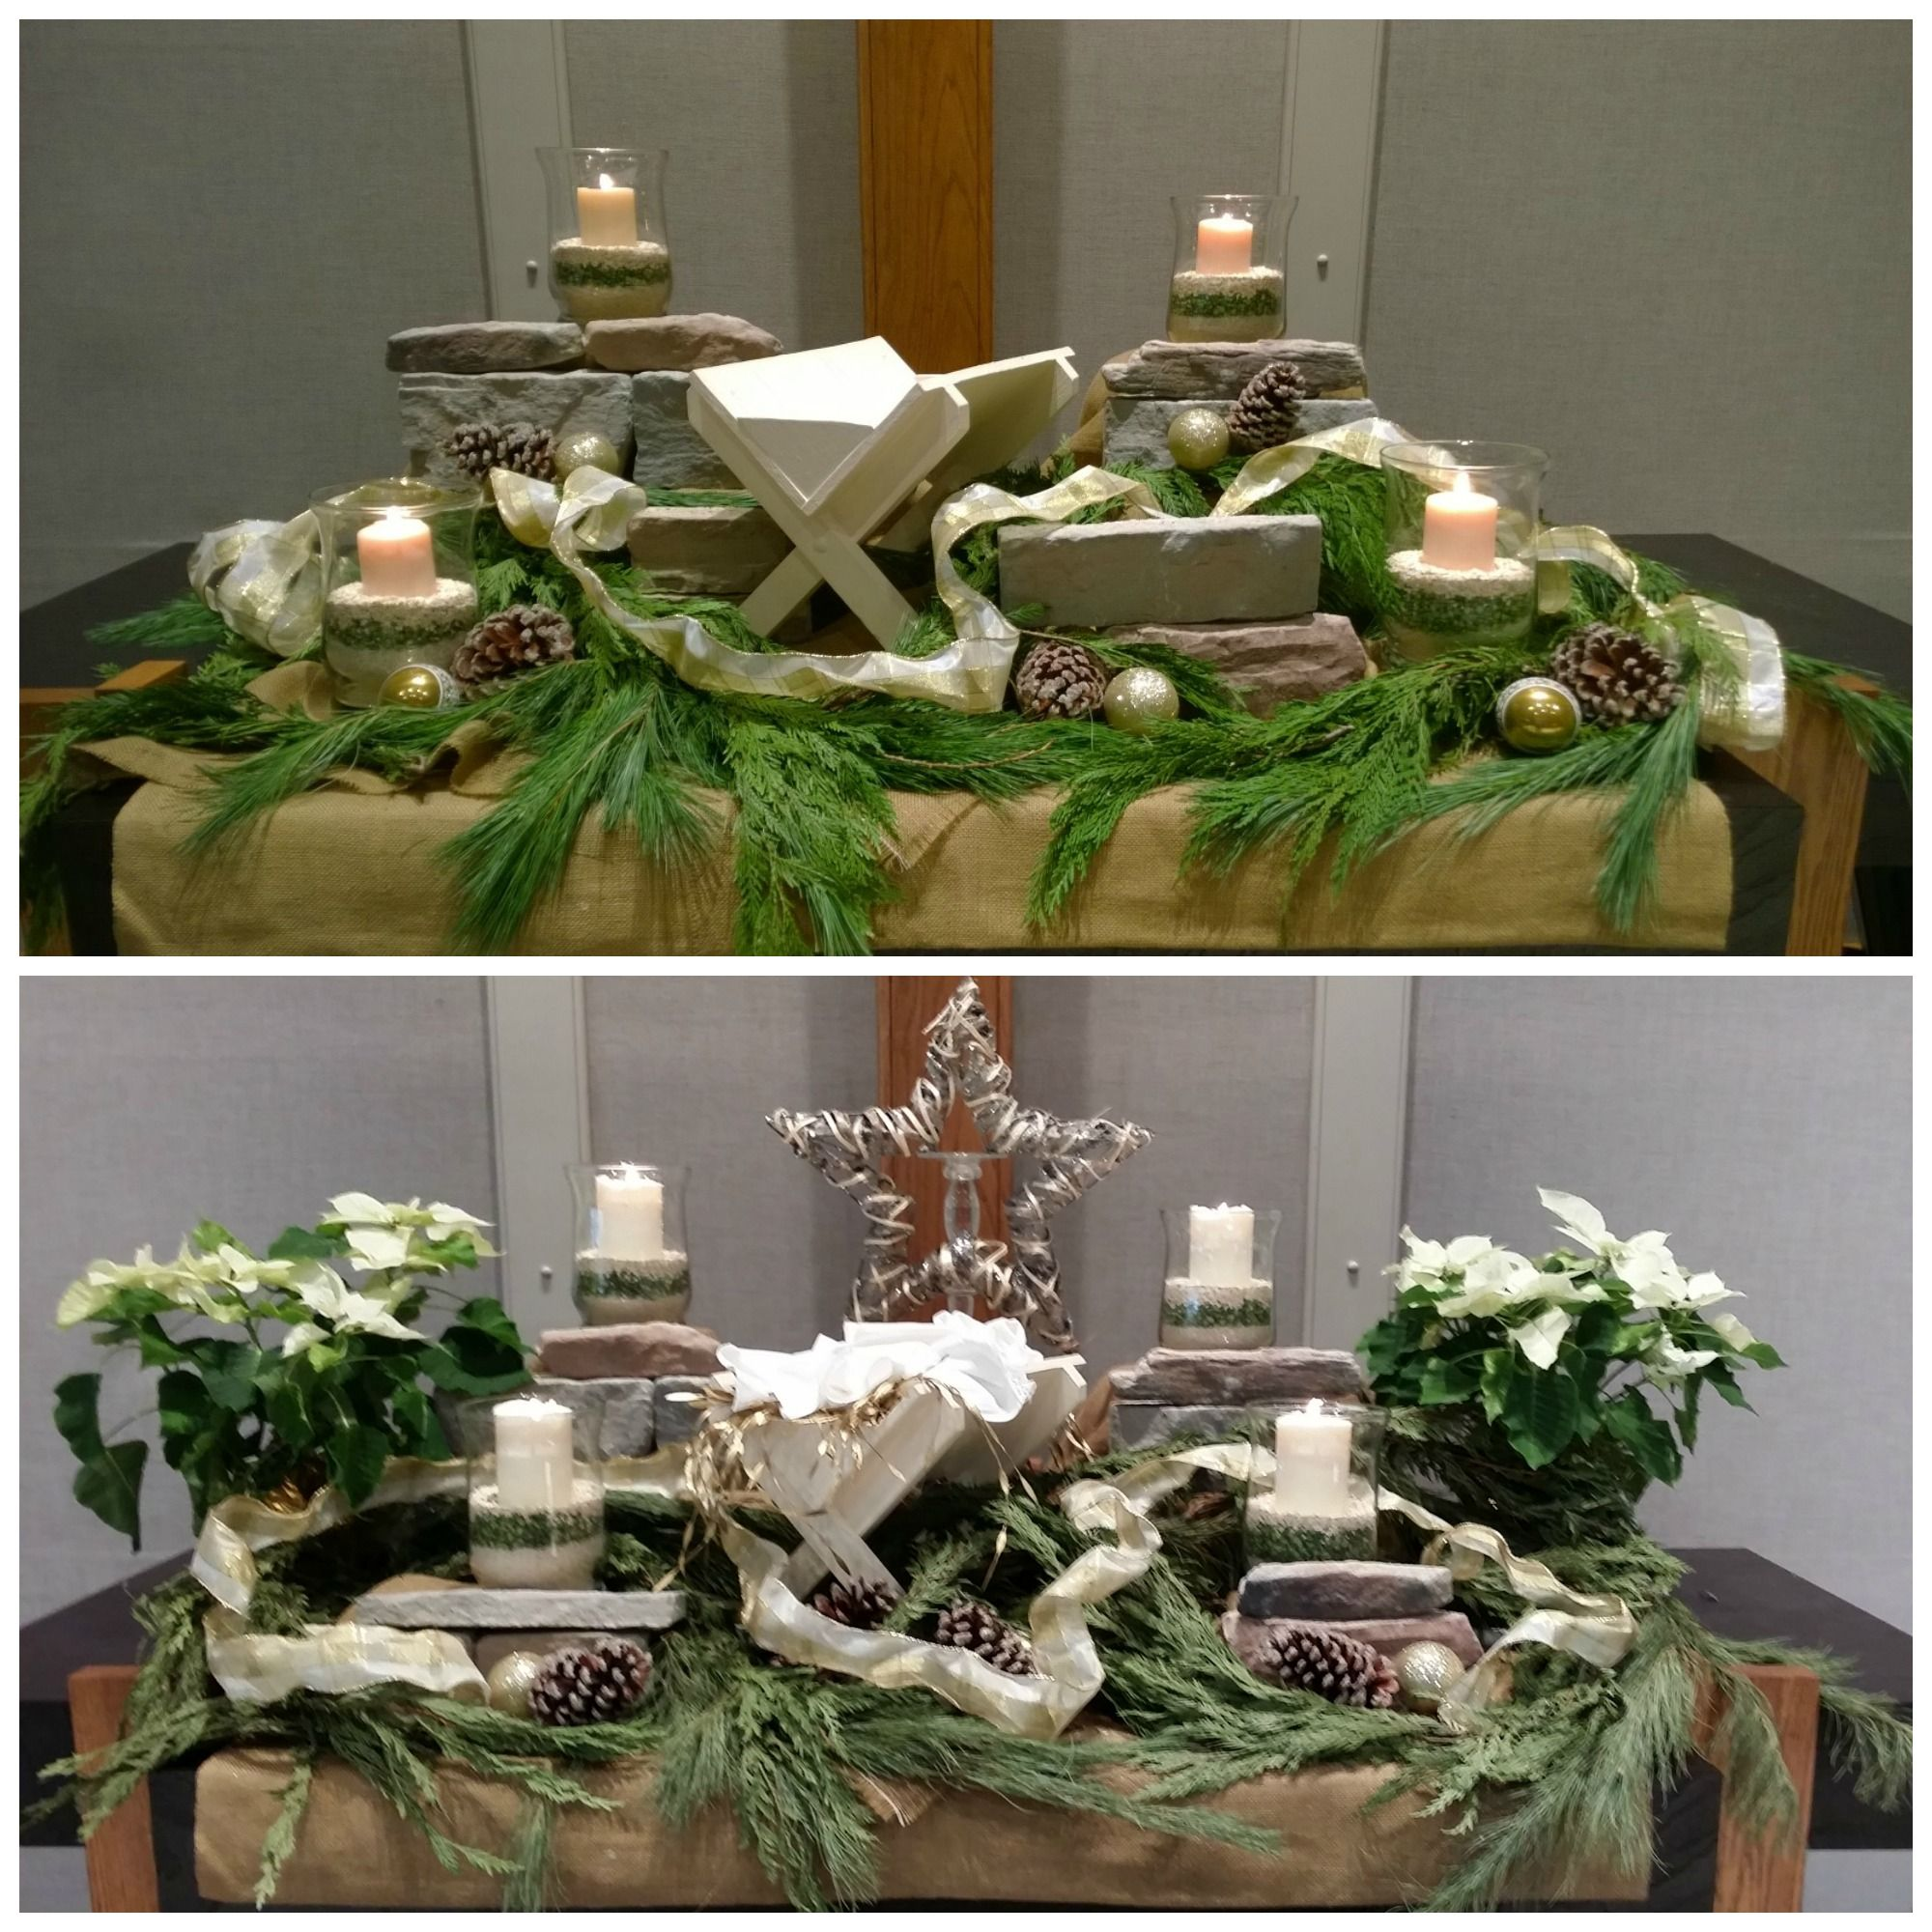 Altar Ideas: Natural Altar For December 2014. Top Photo Is Advent